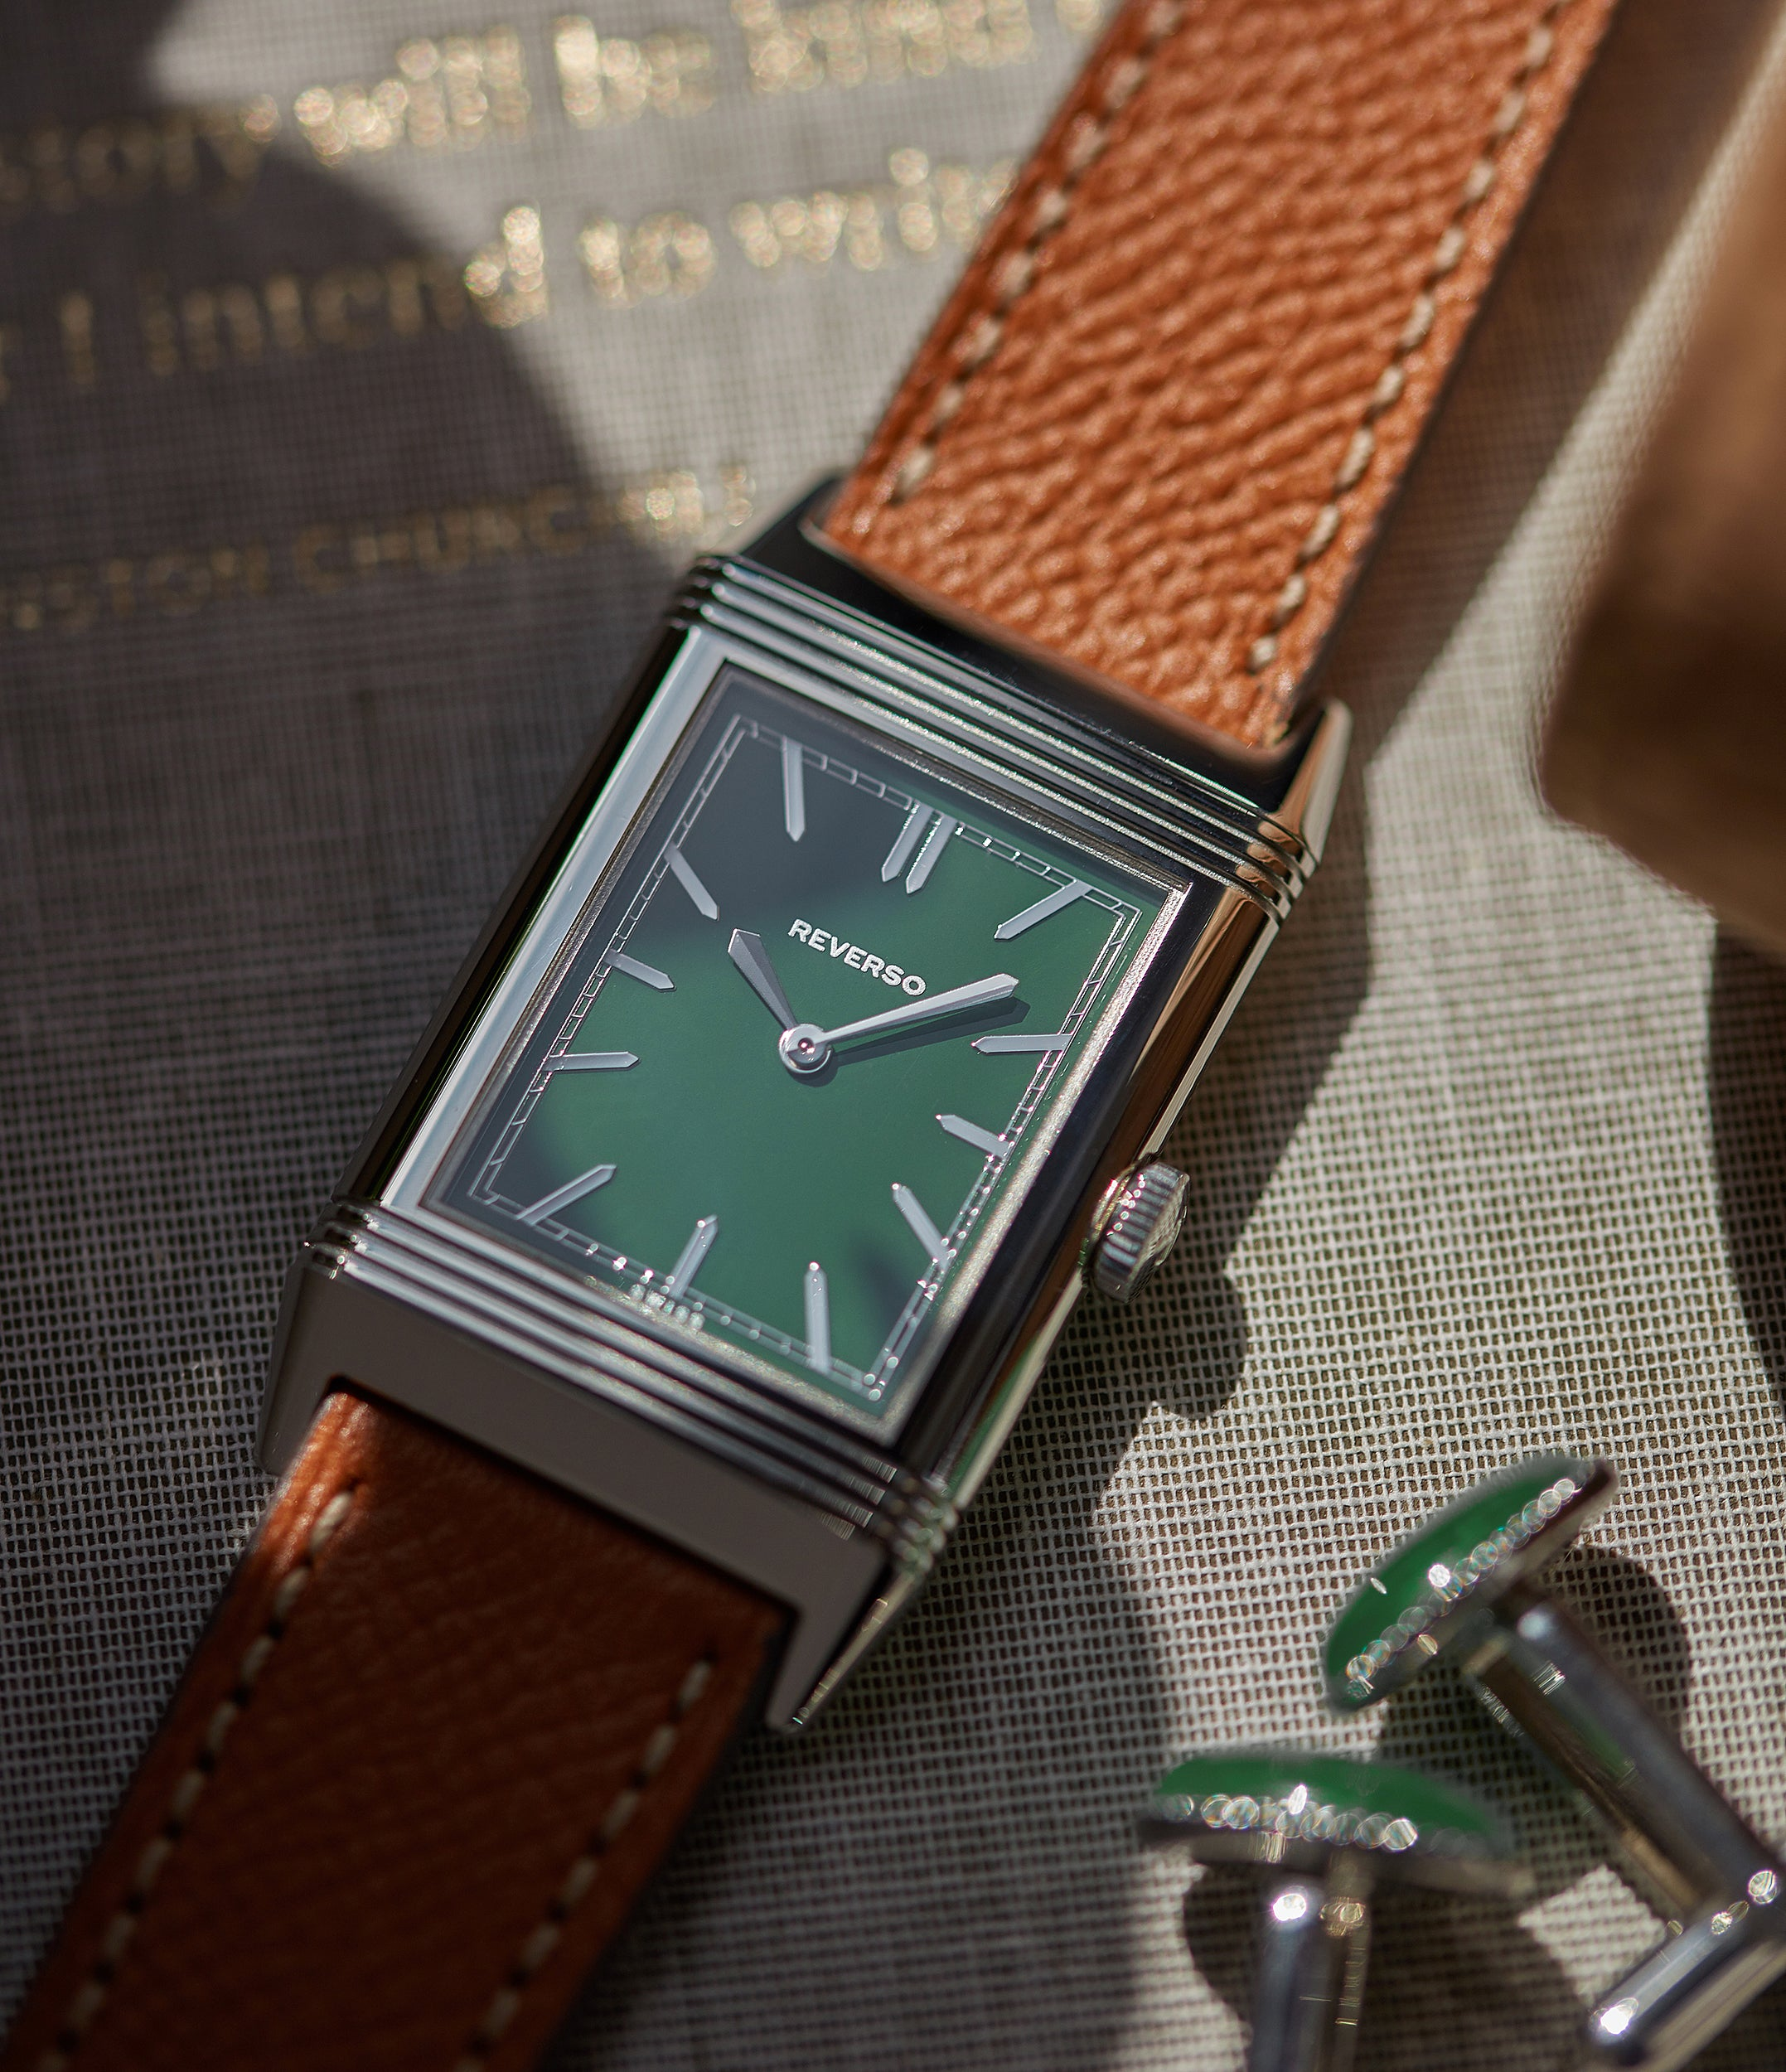 shop men's dress watch Jaeger-LeCoultre Grand Reverso 1931 Green London Flagship Edition